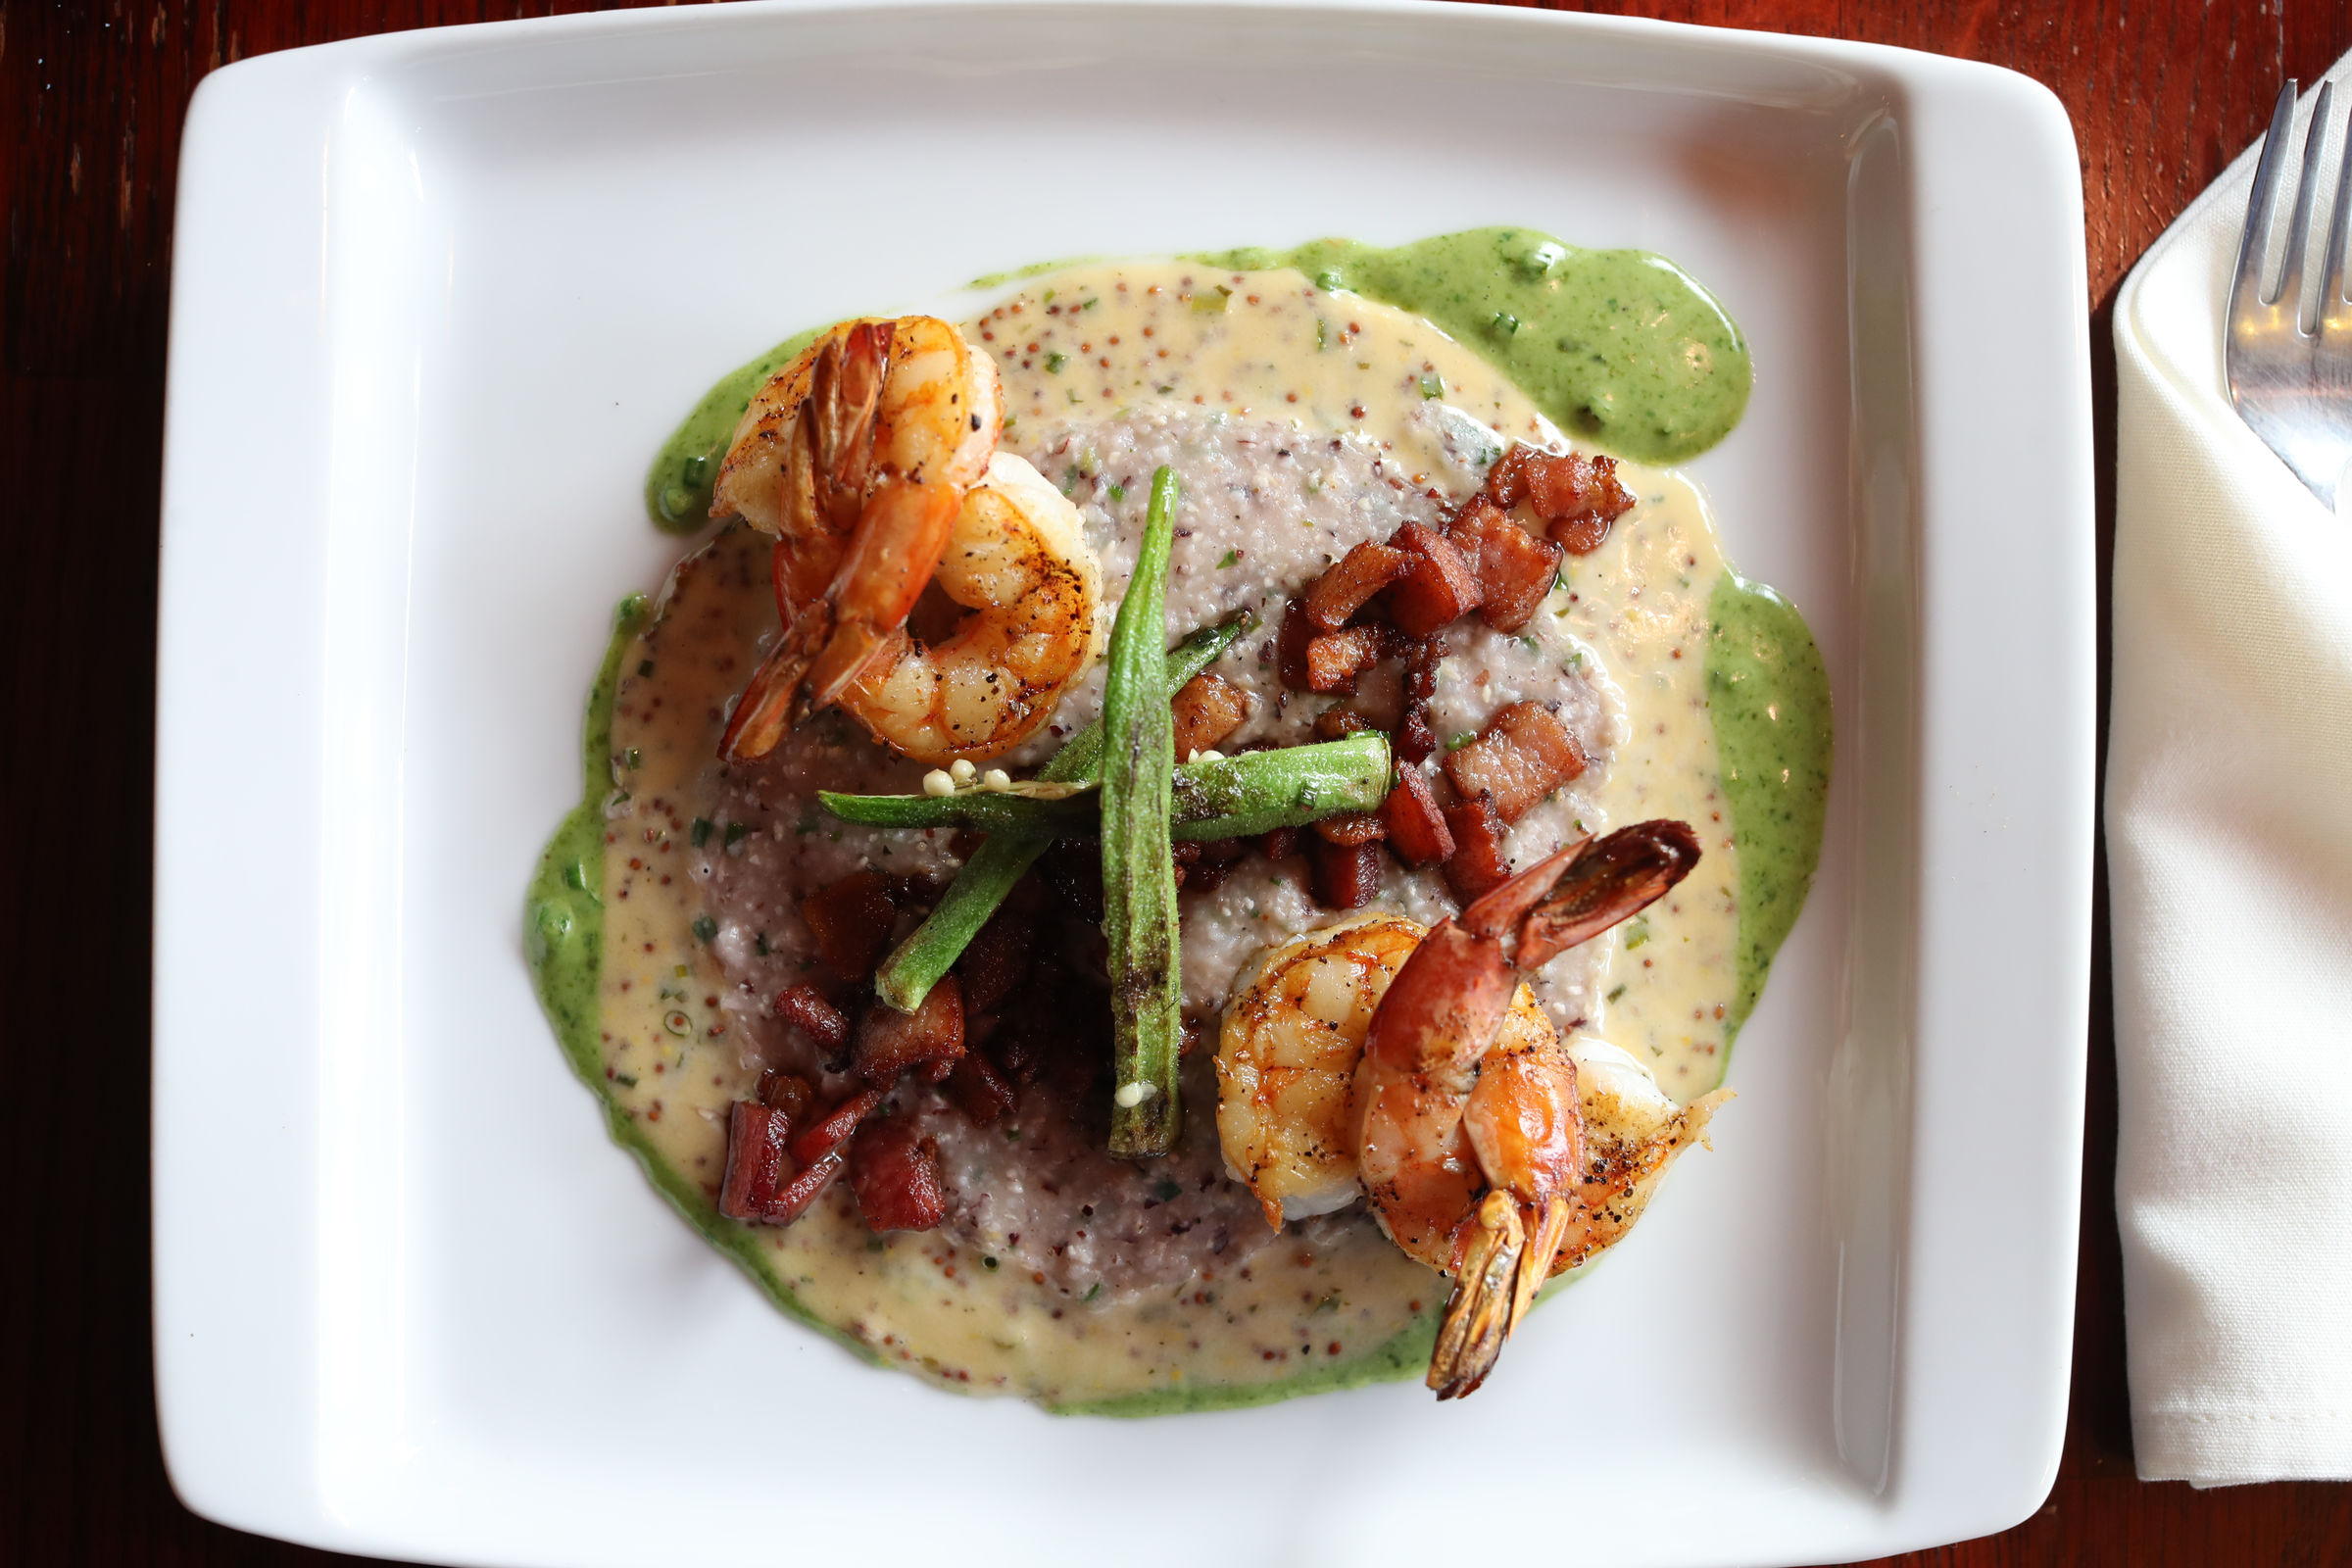 The shrimp and grits at Maize.